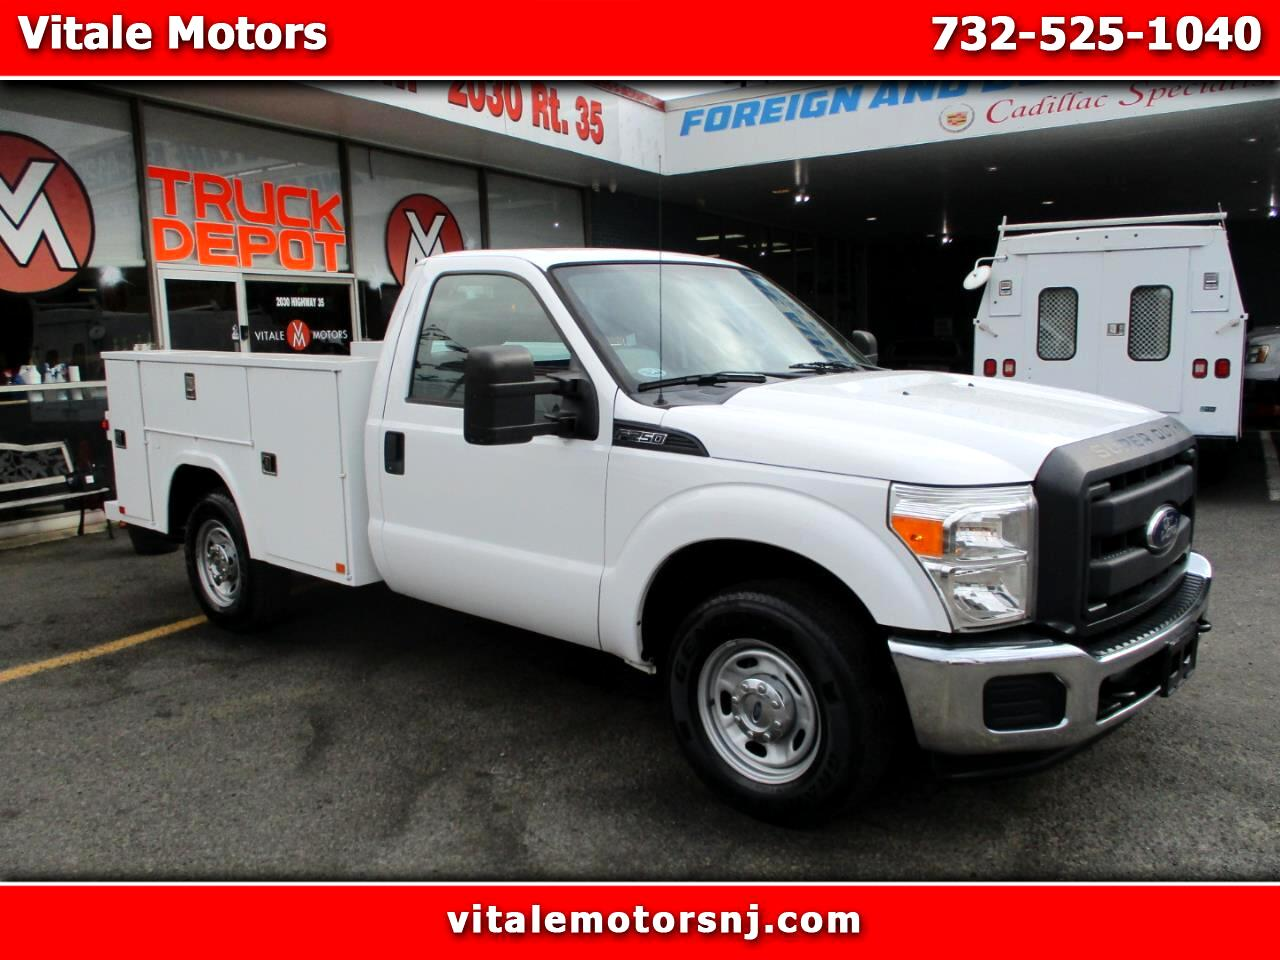 2014 Ford F-250 SD REG. CAB UTILITY BODY SRW